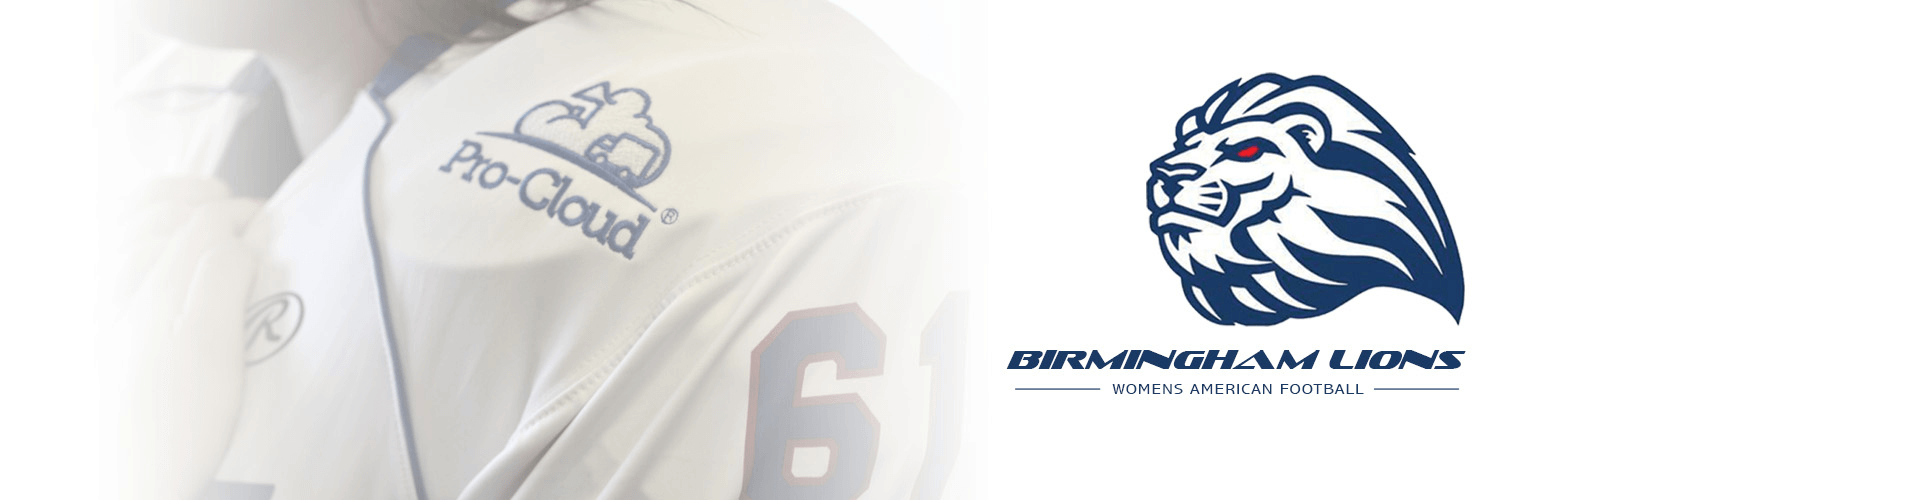 birmingham lions womens american football team logo with sponsor jersey